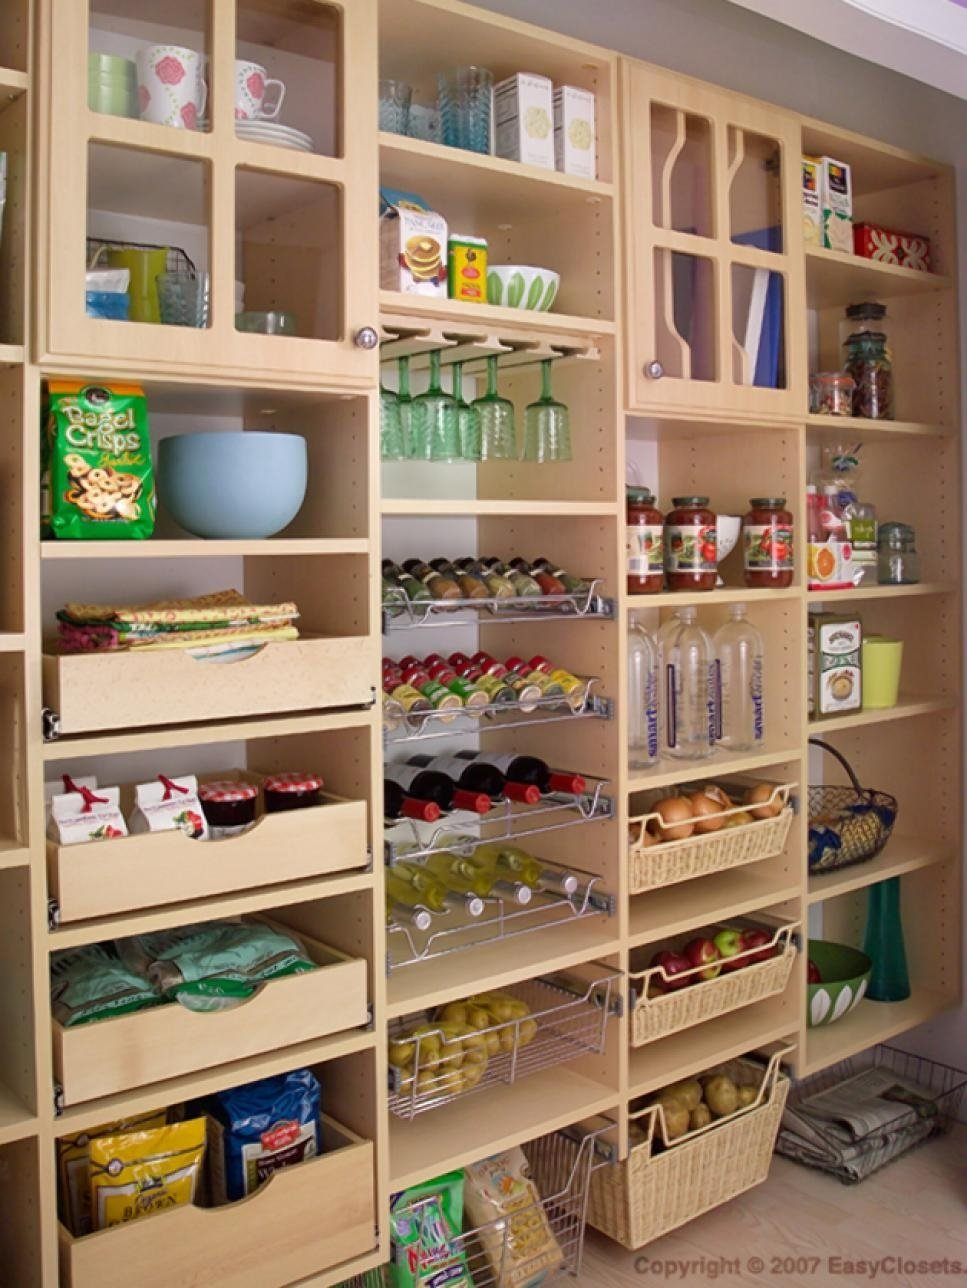 10 Cute Walk In Pantry Design Ideas how to organize a pantry with deep shelves organization diy walk in 2021